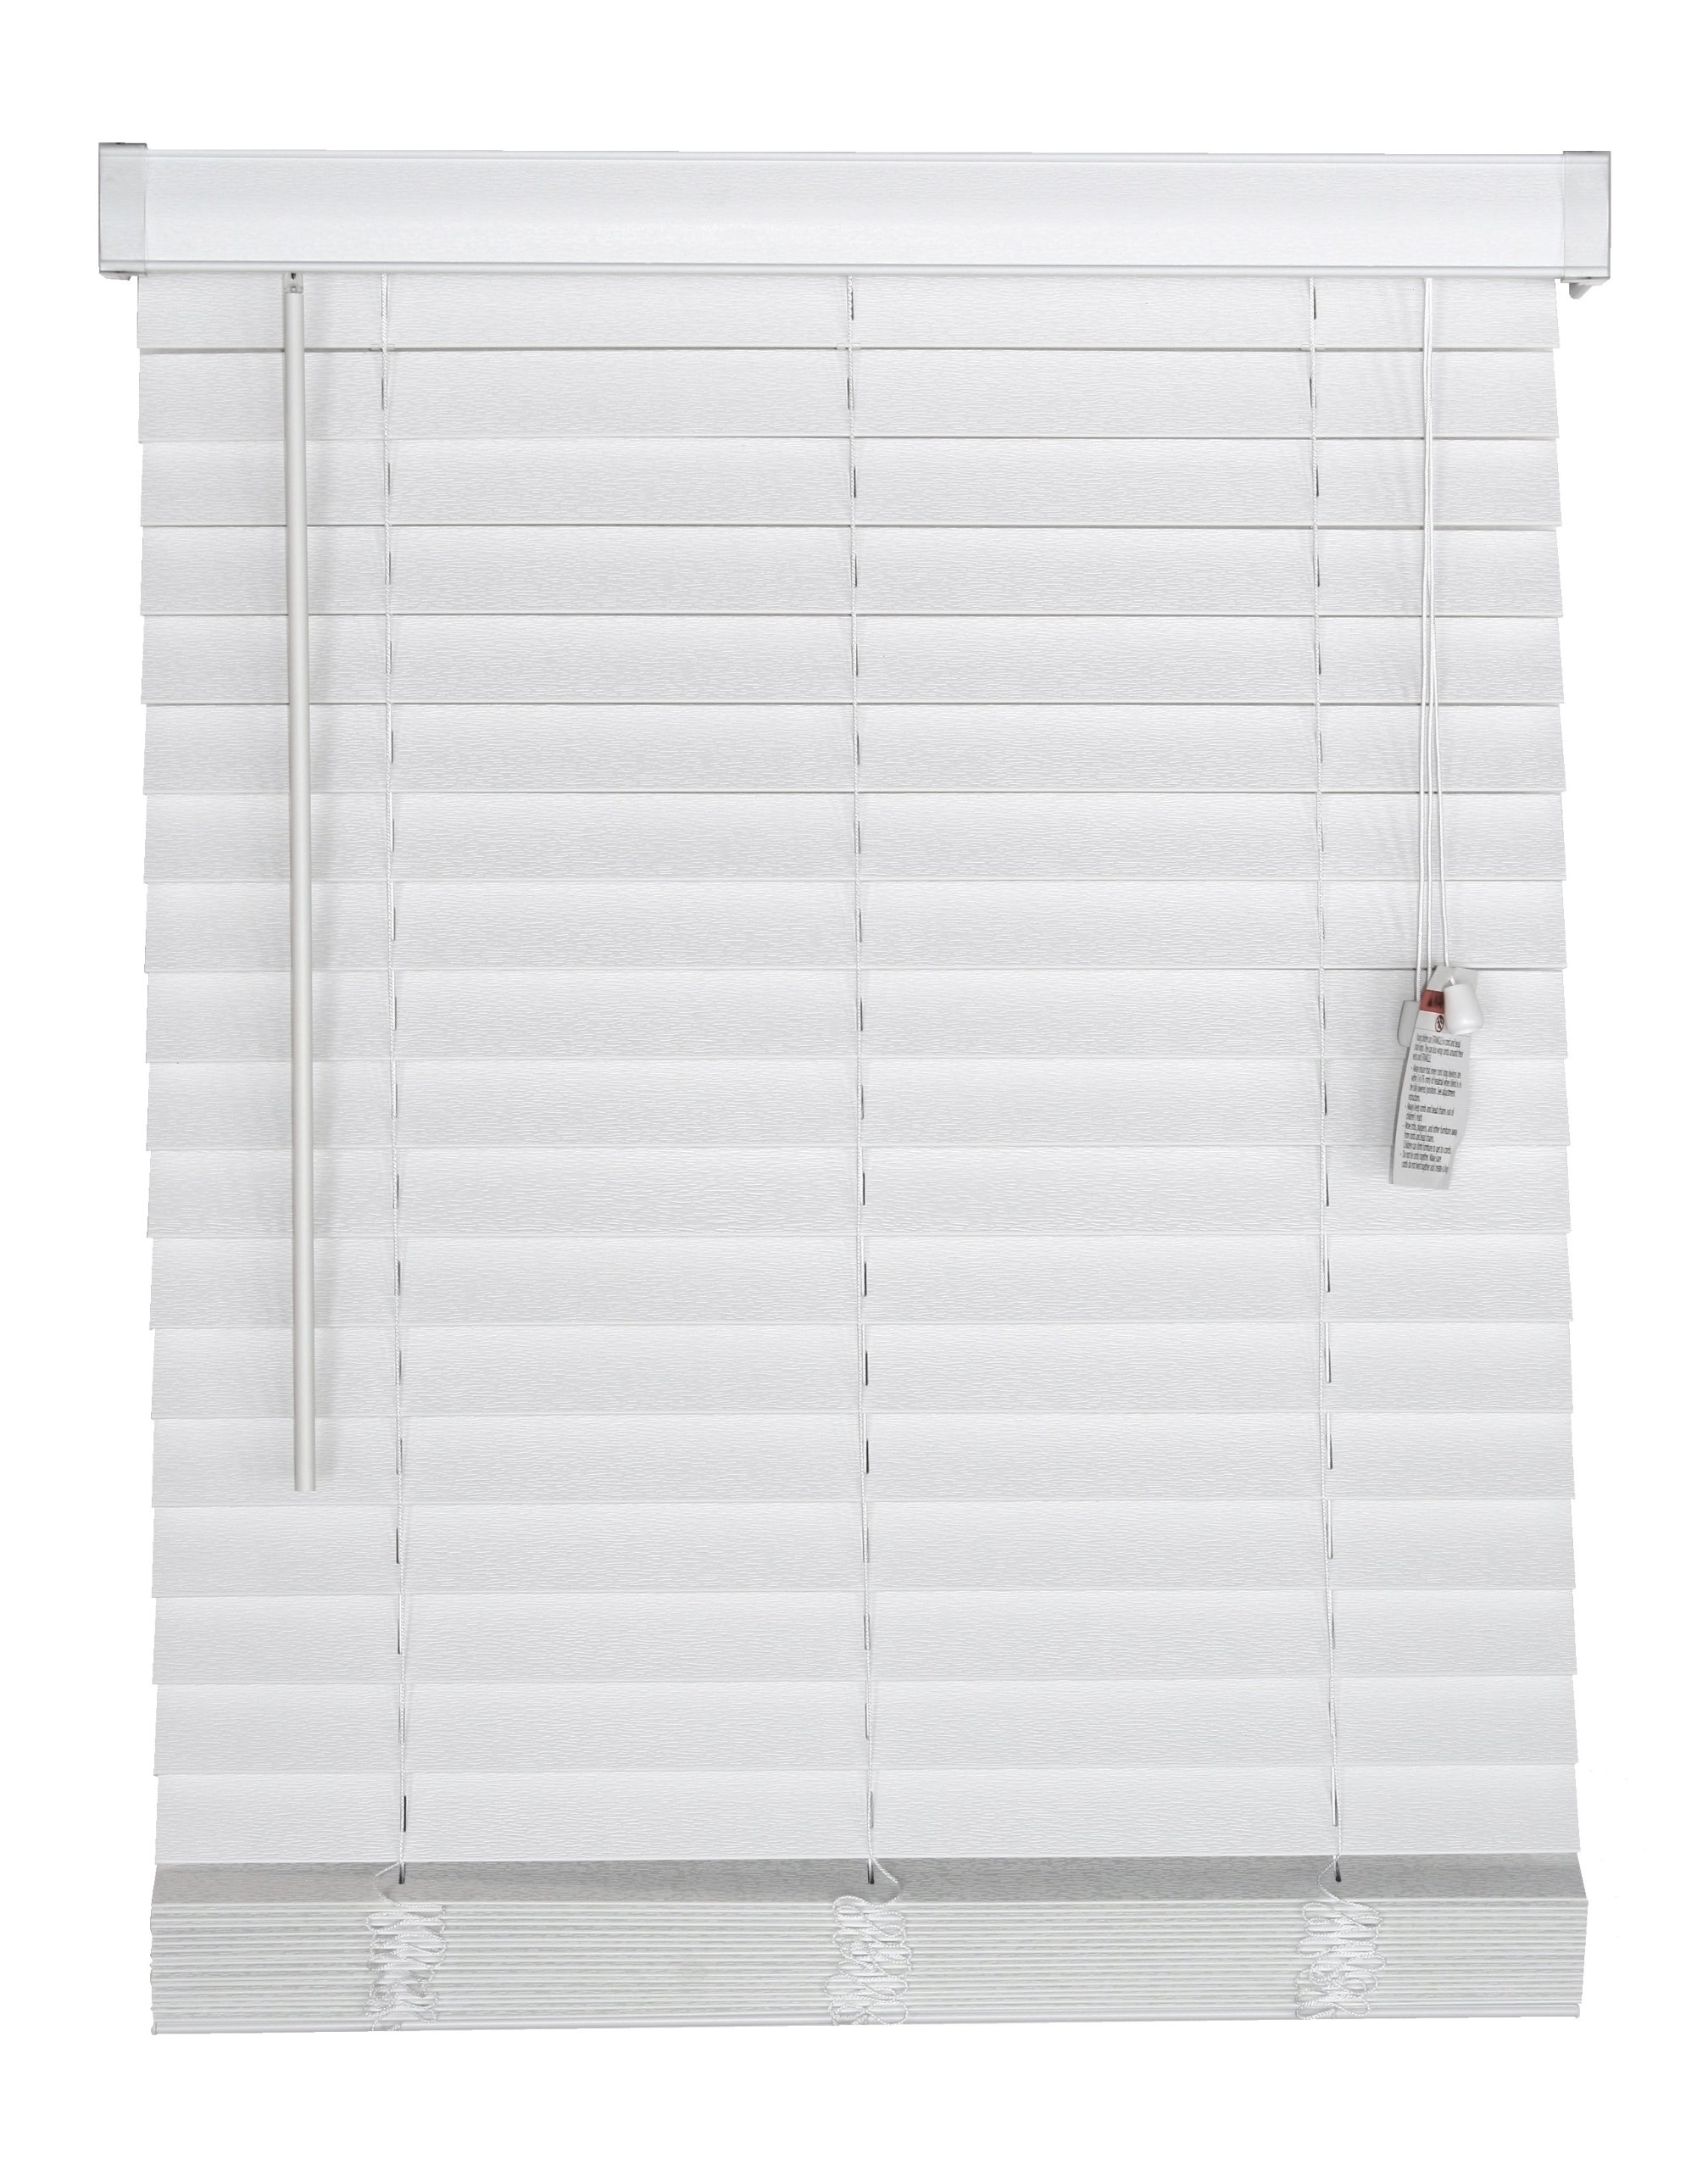 Corded, 2 inch Faux Wood Blind,  White, 32.5W x 36L